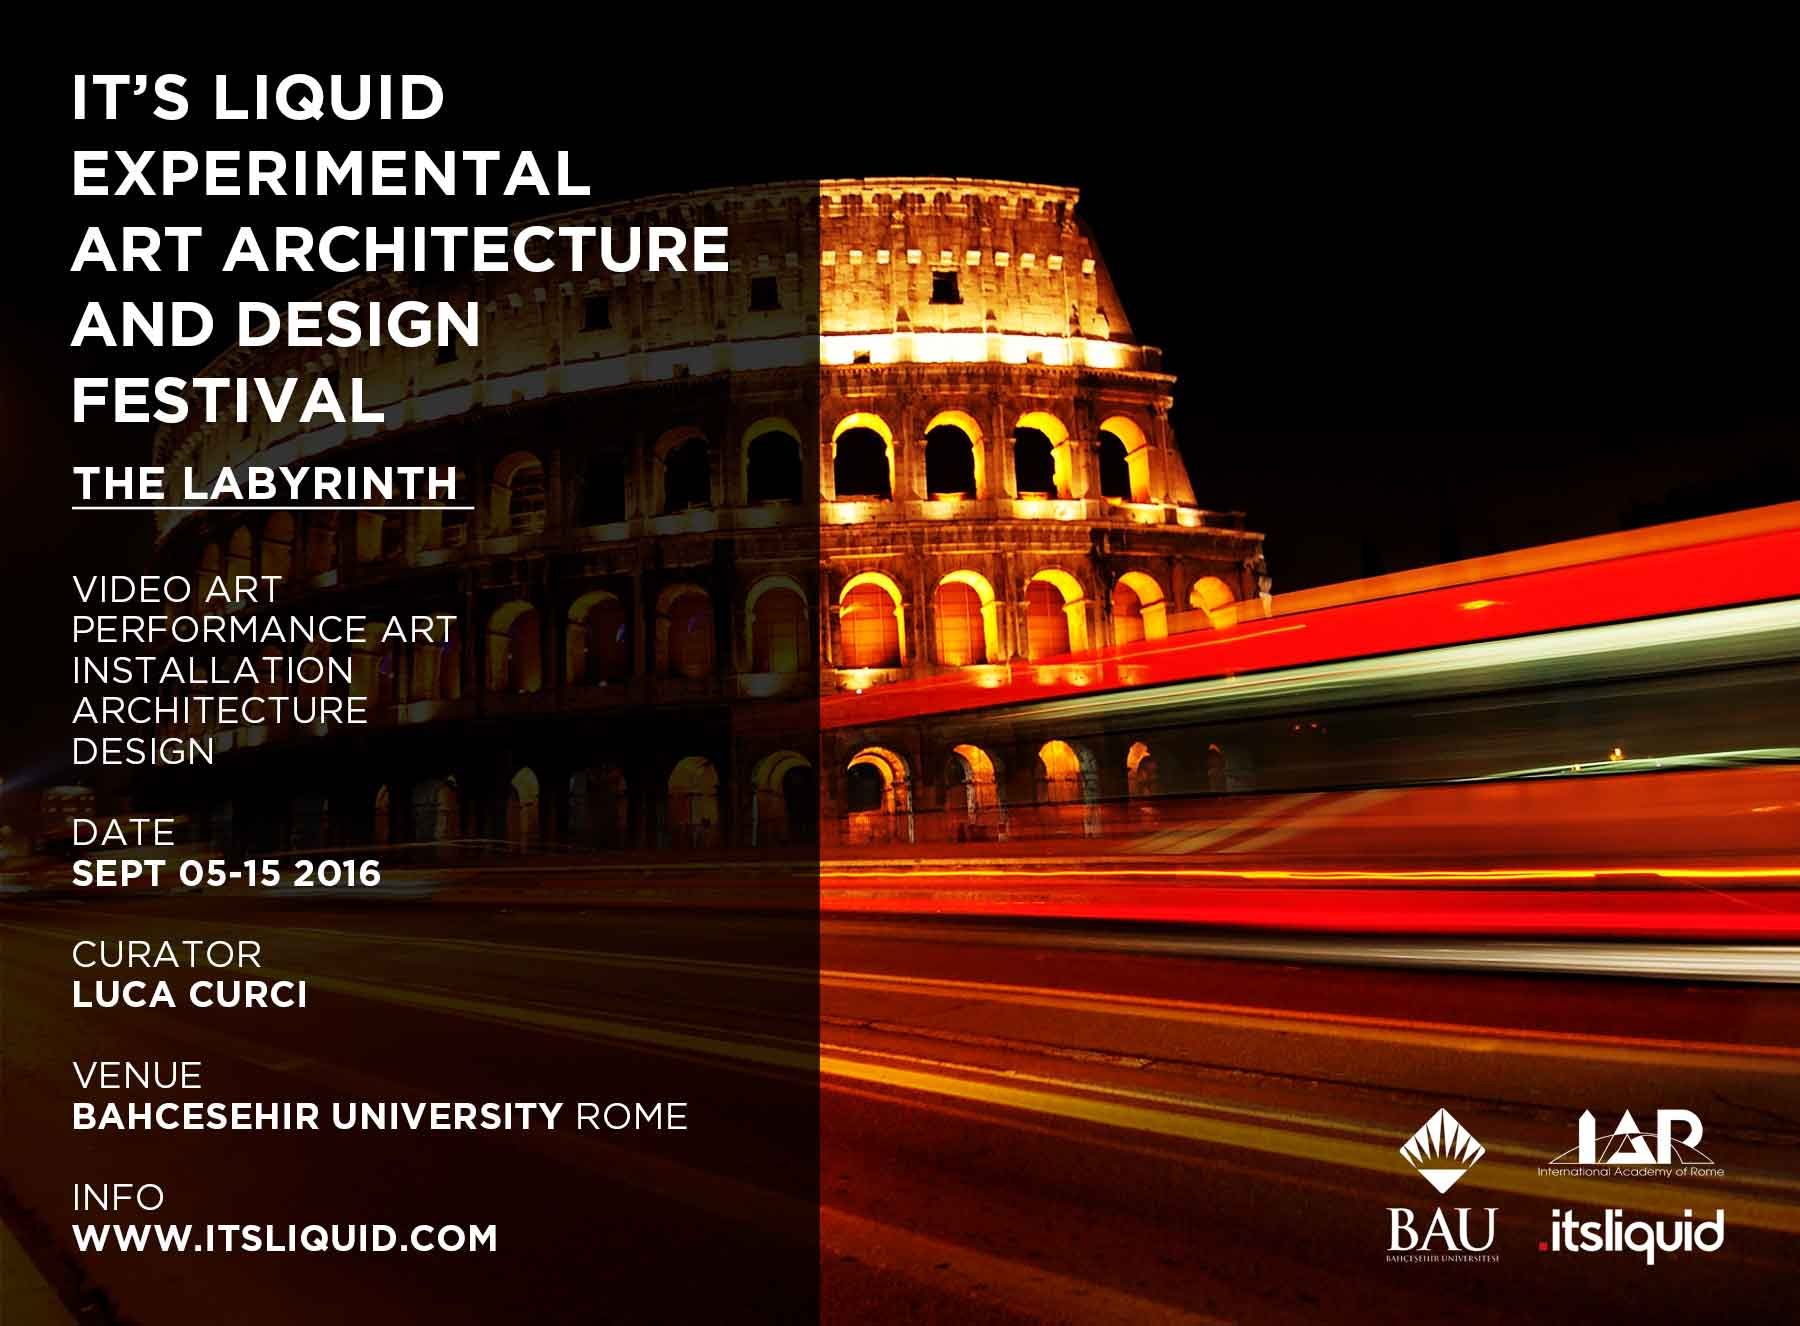 IT'S LIQUID EXPERIMENTAL ART ARCHITECTURE AND DESIGN FESTIVAL - THE LABYRINTH | ROME